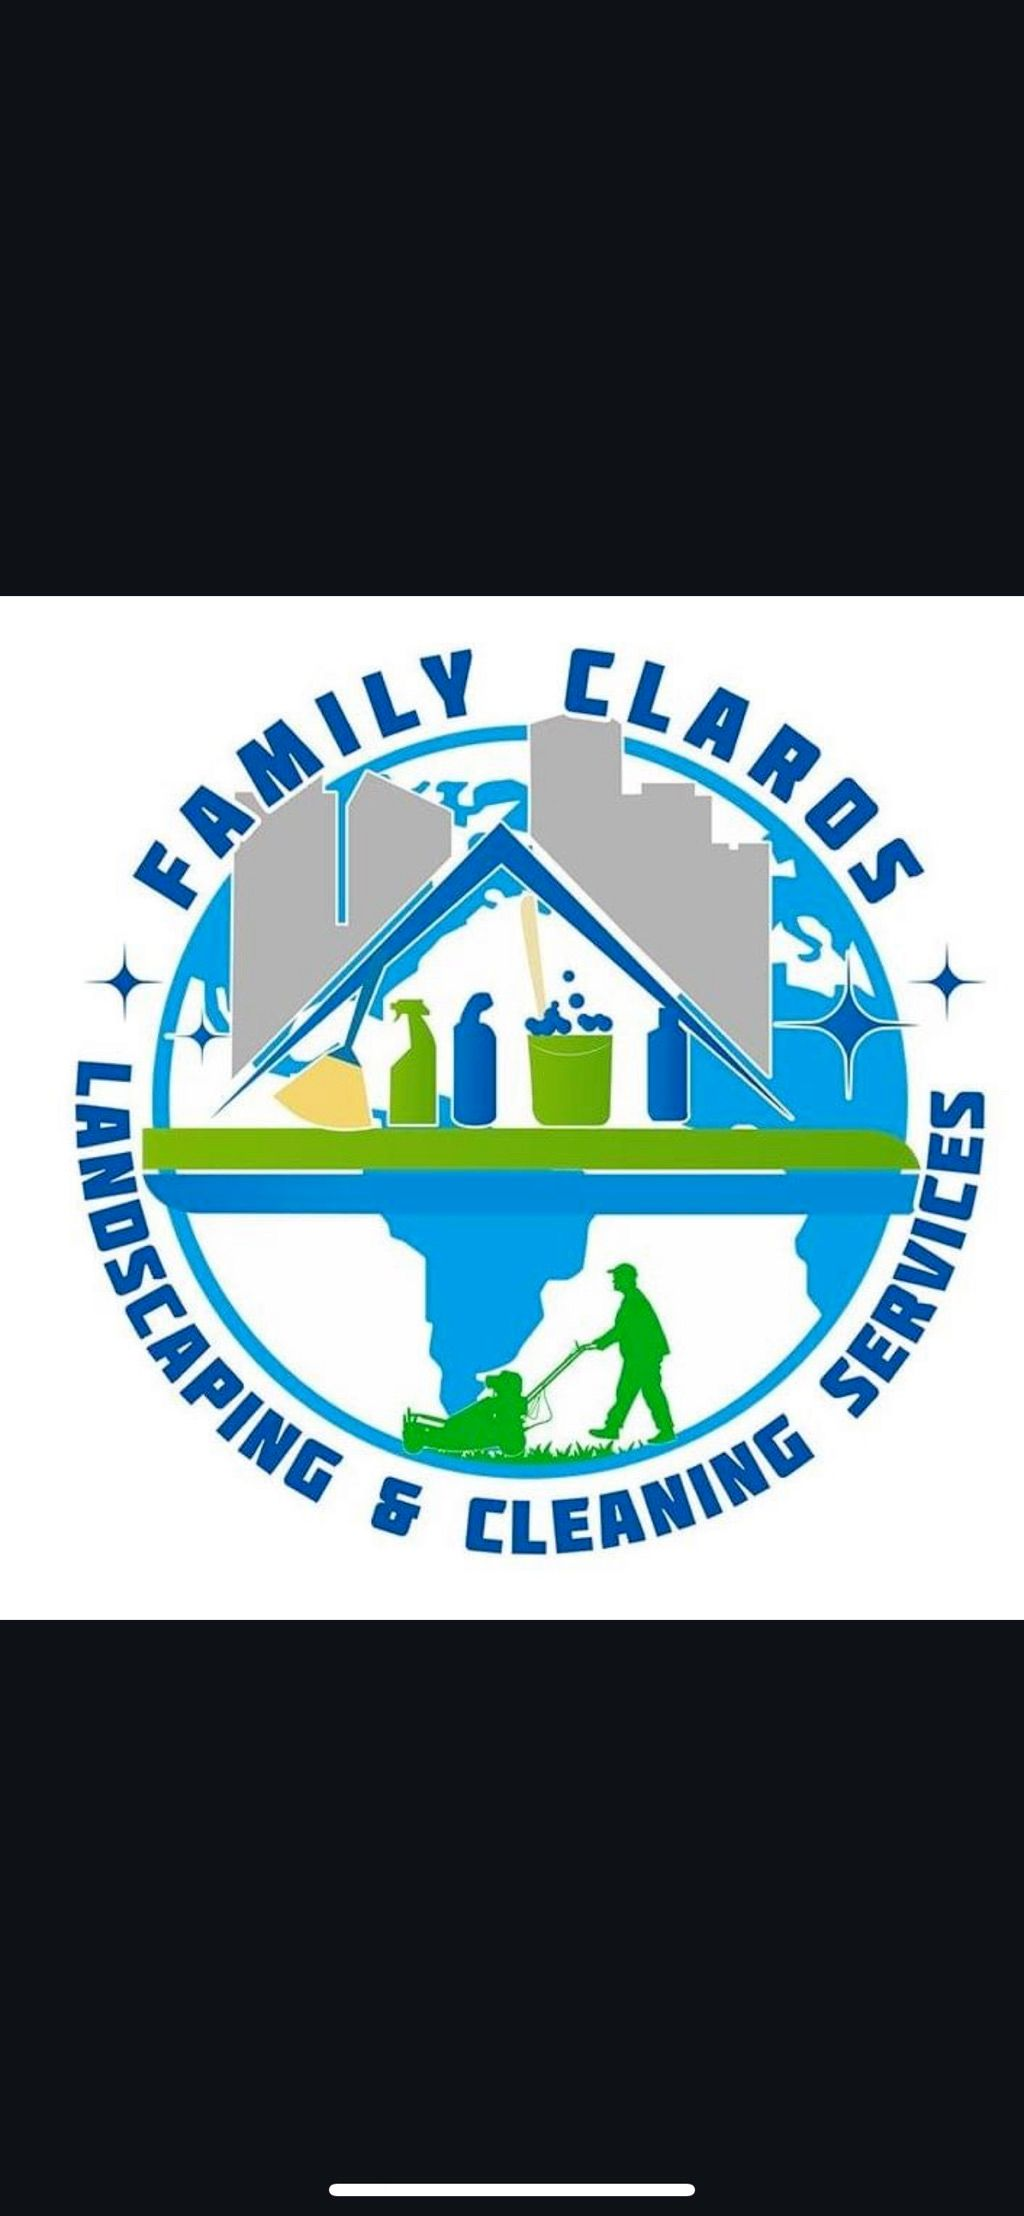 Family Claros landscaping & Cleaning Services